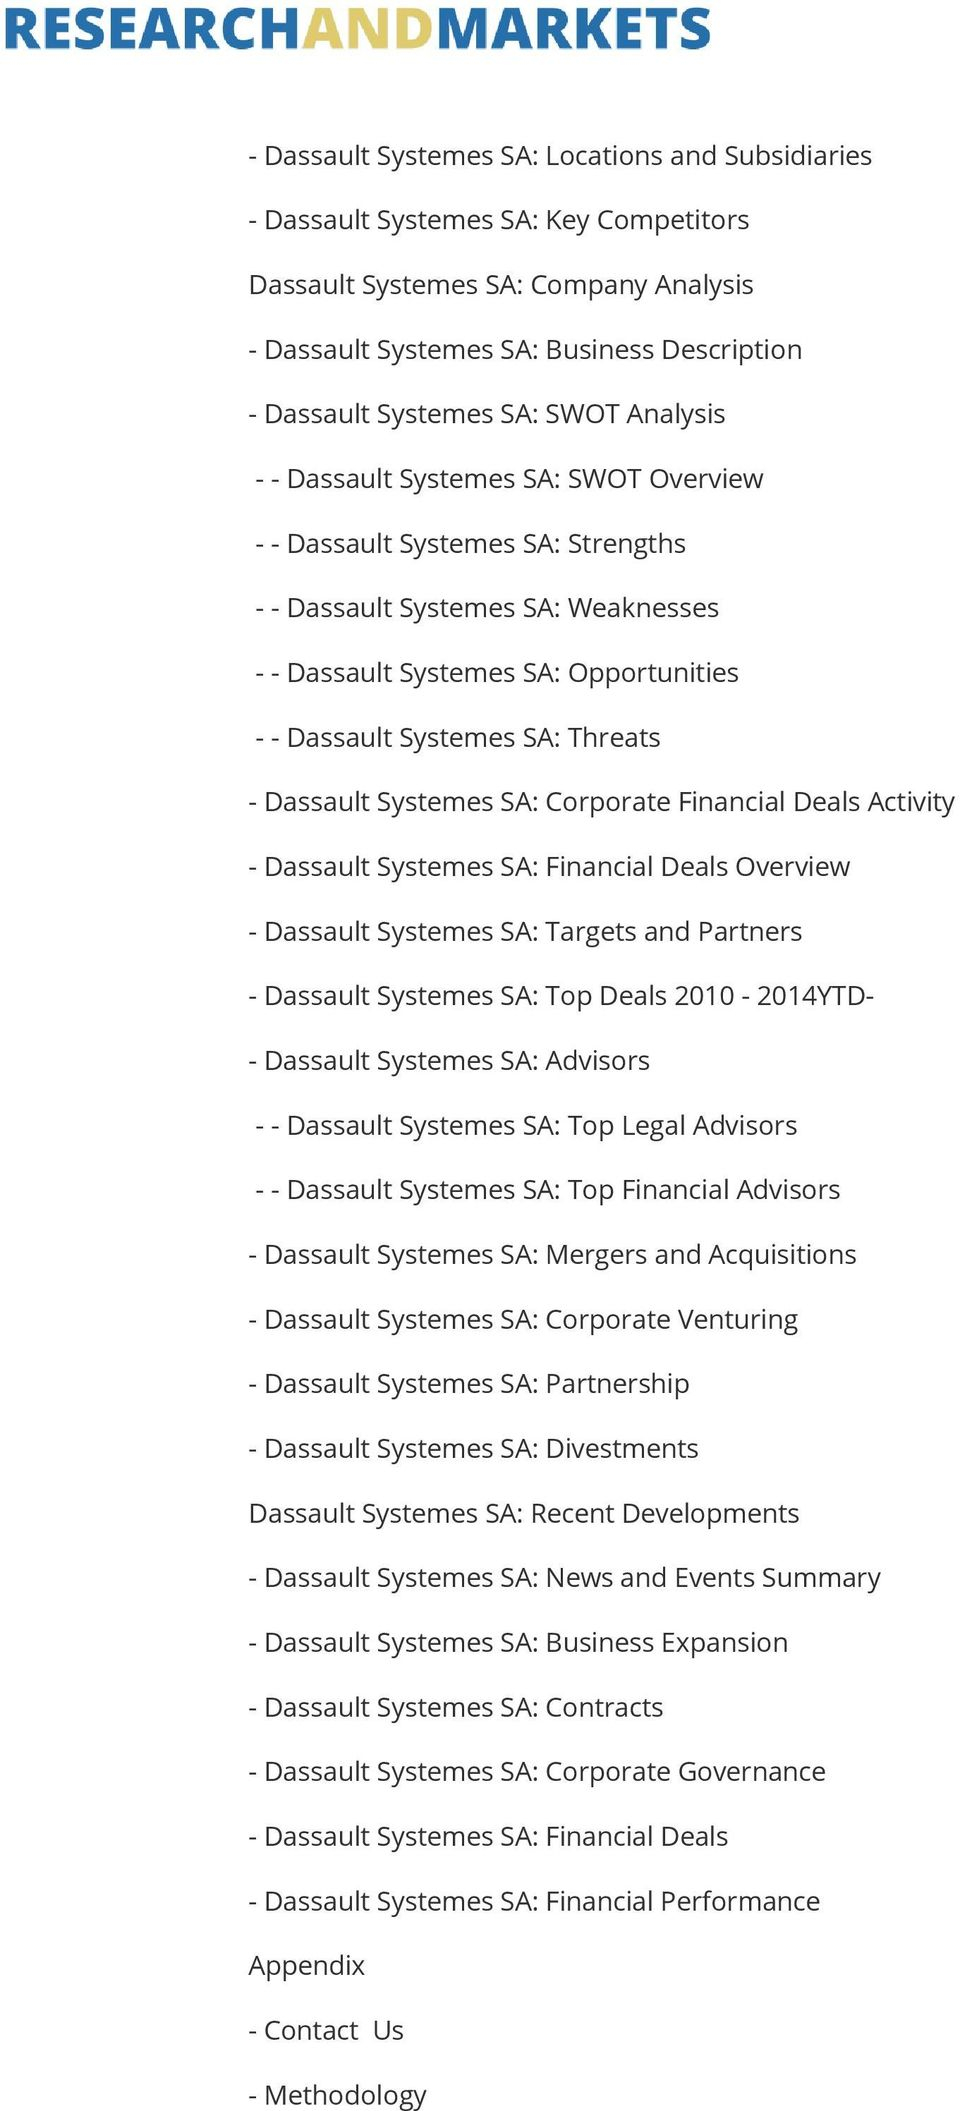 Threats - Dassault Systemes SA: Corporate Financial Deals Activity - Dassault Systemes SA: Financial Deals Overview - Dassault Systemes SA: Targets and Partners - Dassault Systemes SA: Top Deals